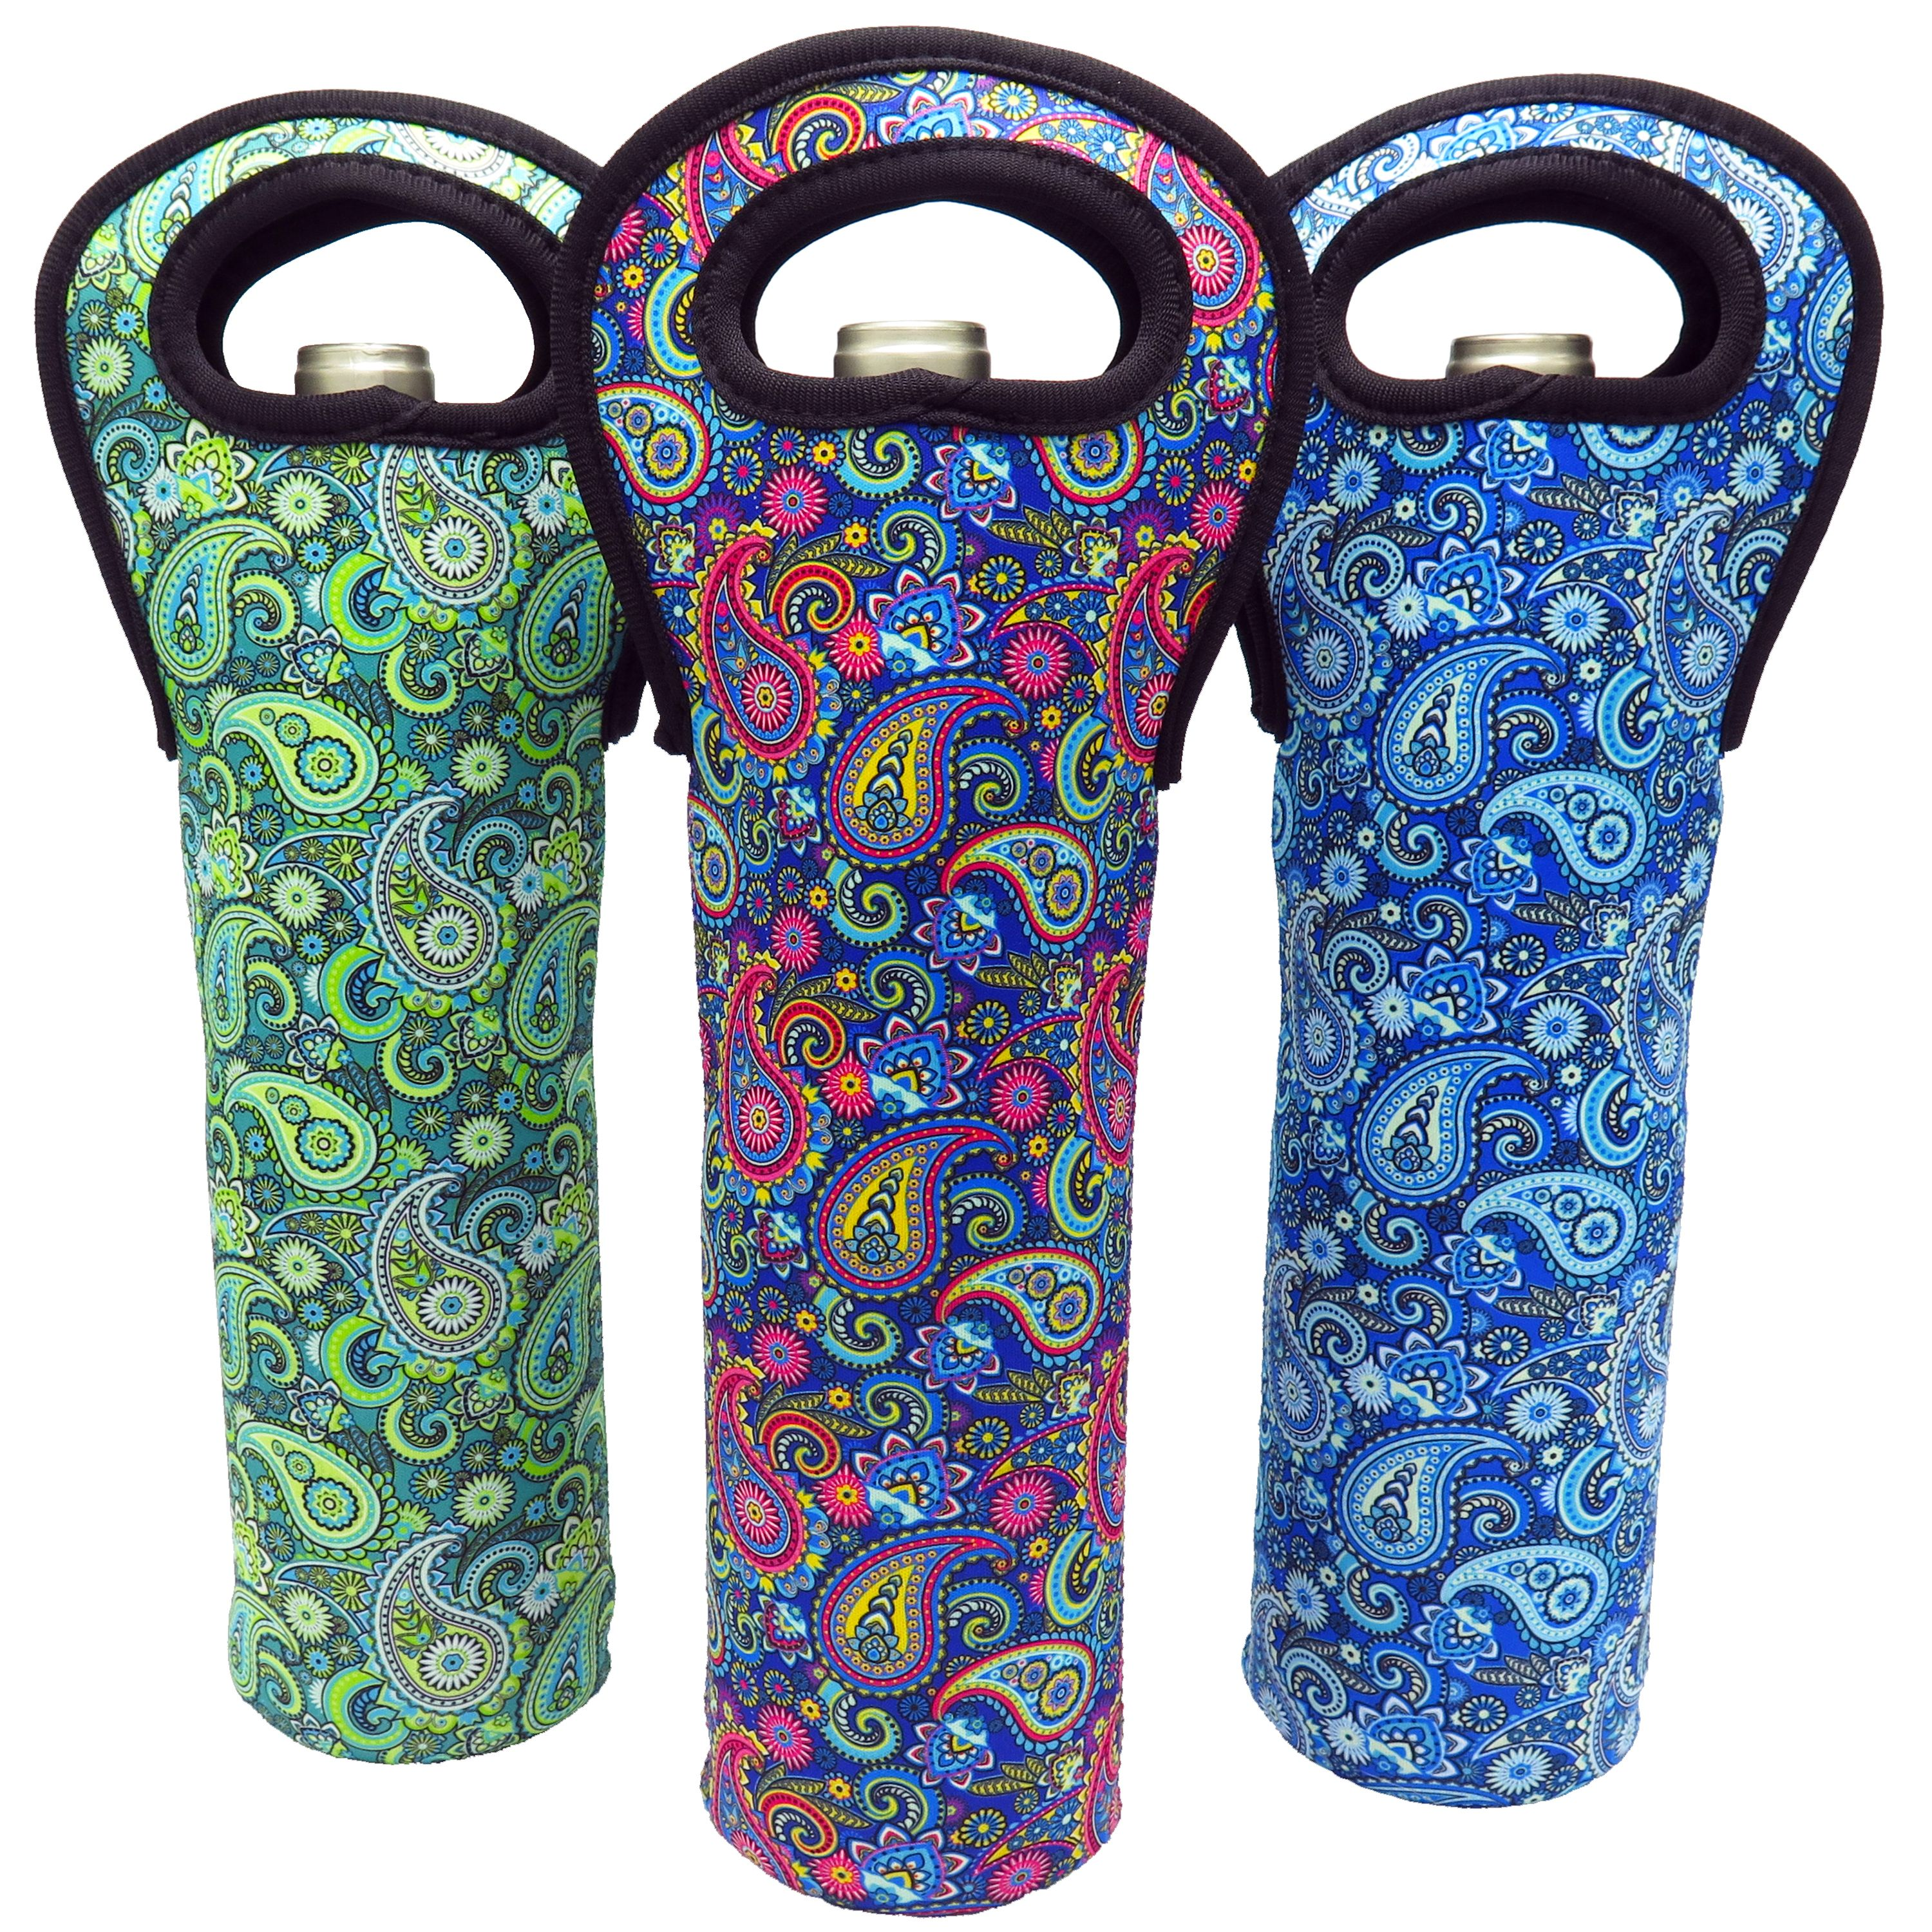 Wine Tote Carrier Bag For Champagne, Chardonnay, Water Bottles - (Paisley 3Pack)